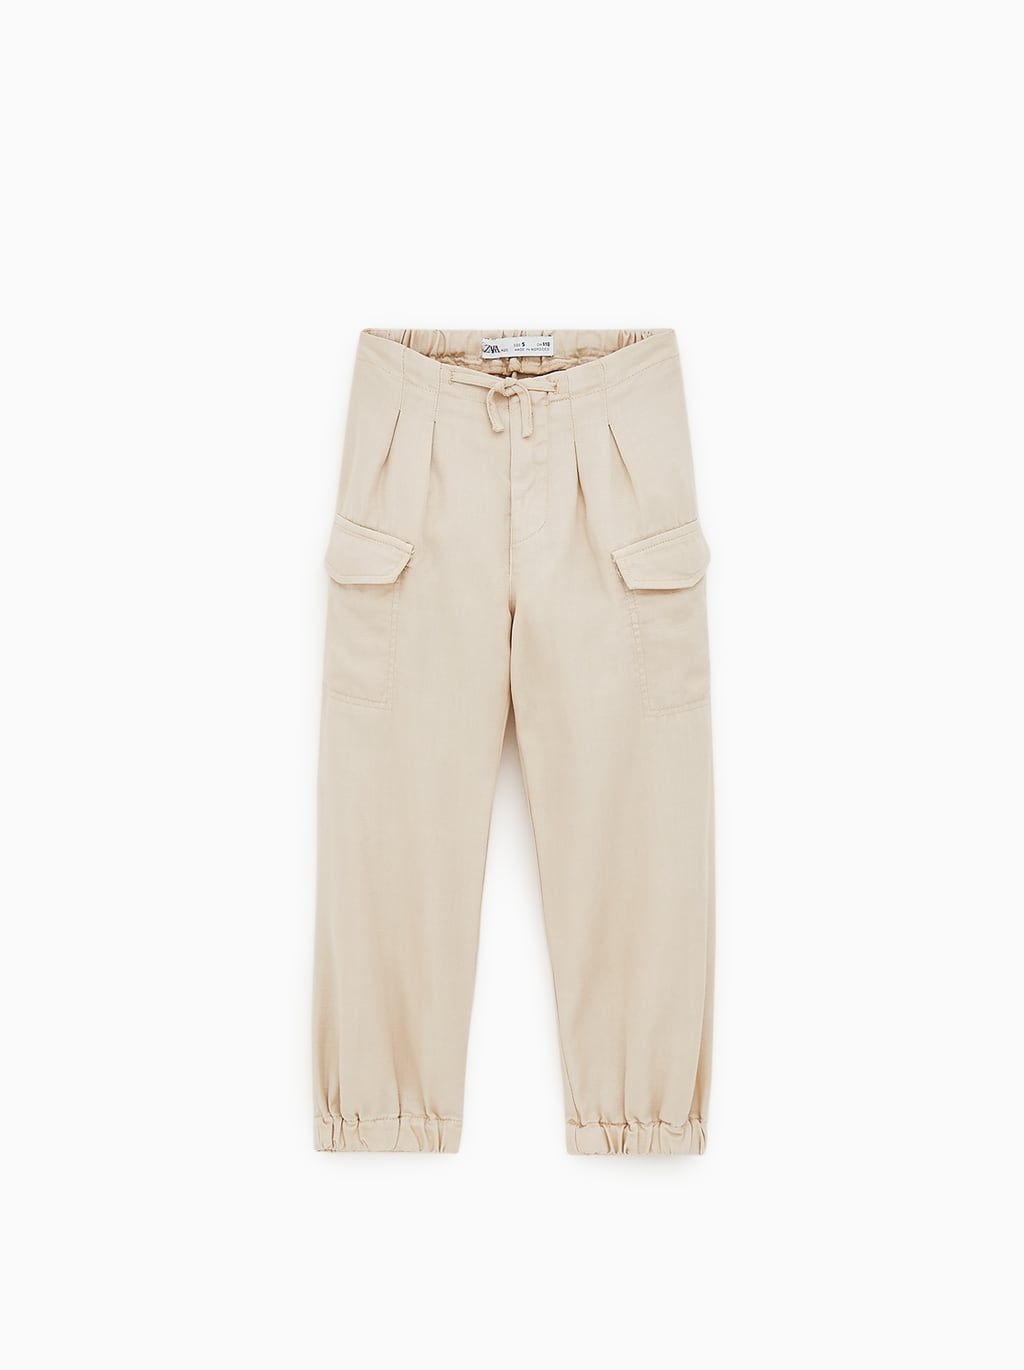 Flowy Cargo Pants With Elastic Trim View All Leggings And Pants Girl 5 14 Yrs Kids Zara Canada Celana